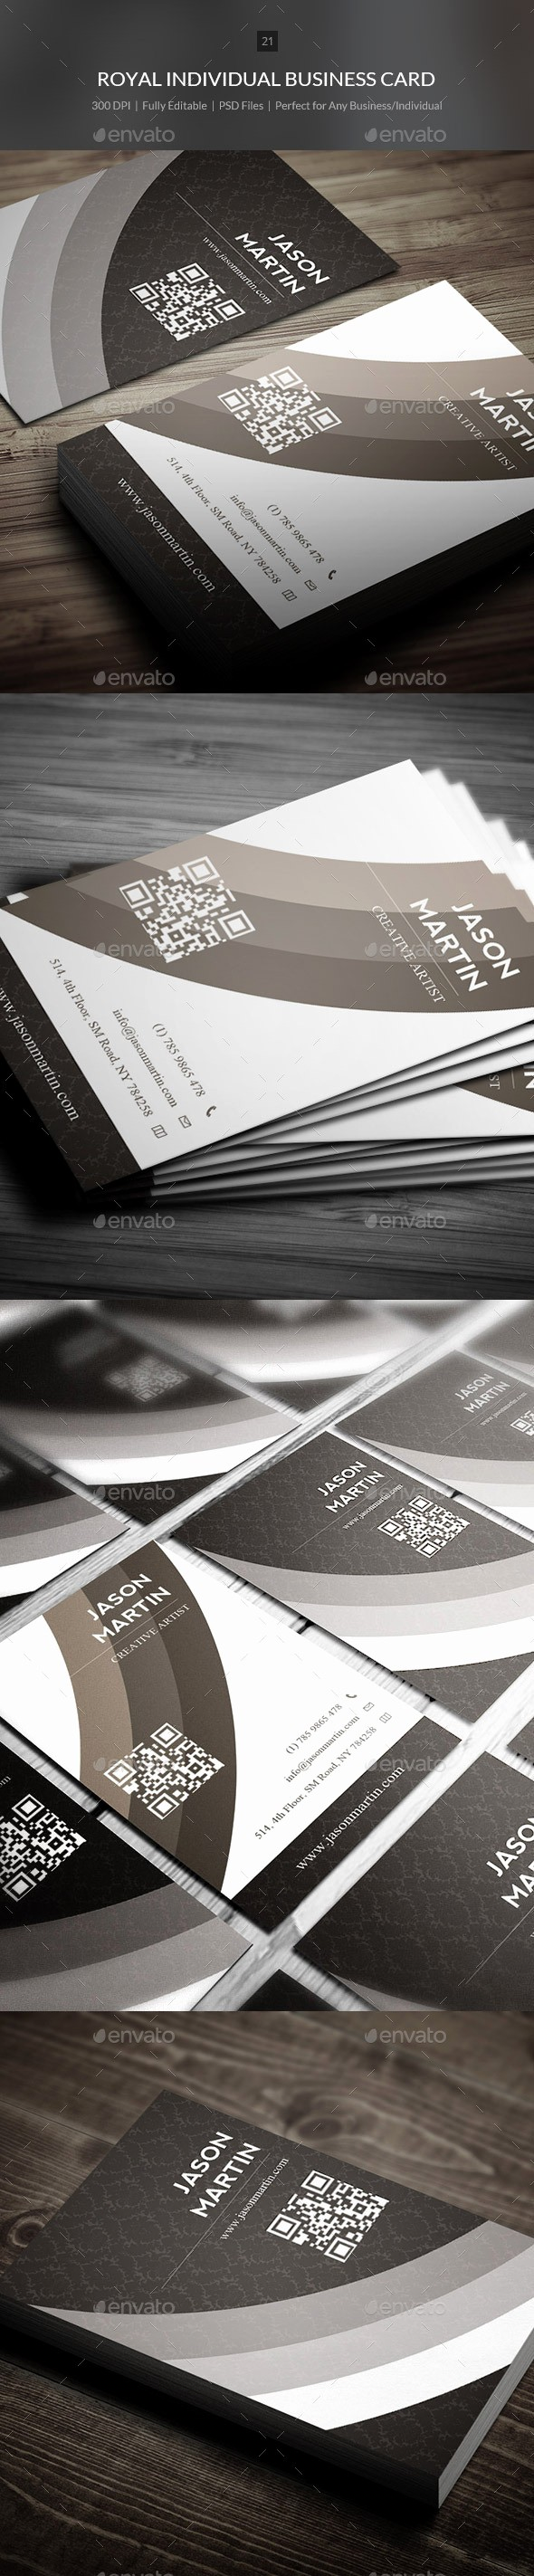 Royal Brites Business Cards Templates Best Of Template for Royal Brites Business Cards 21 6 Cm X 27 9 Cm